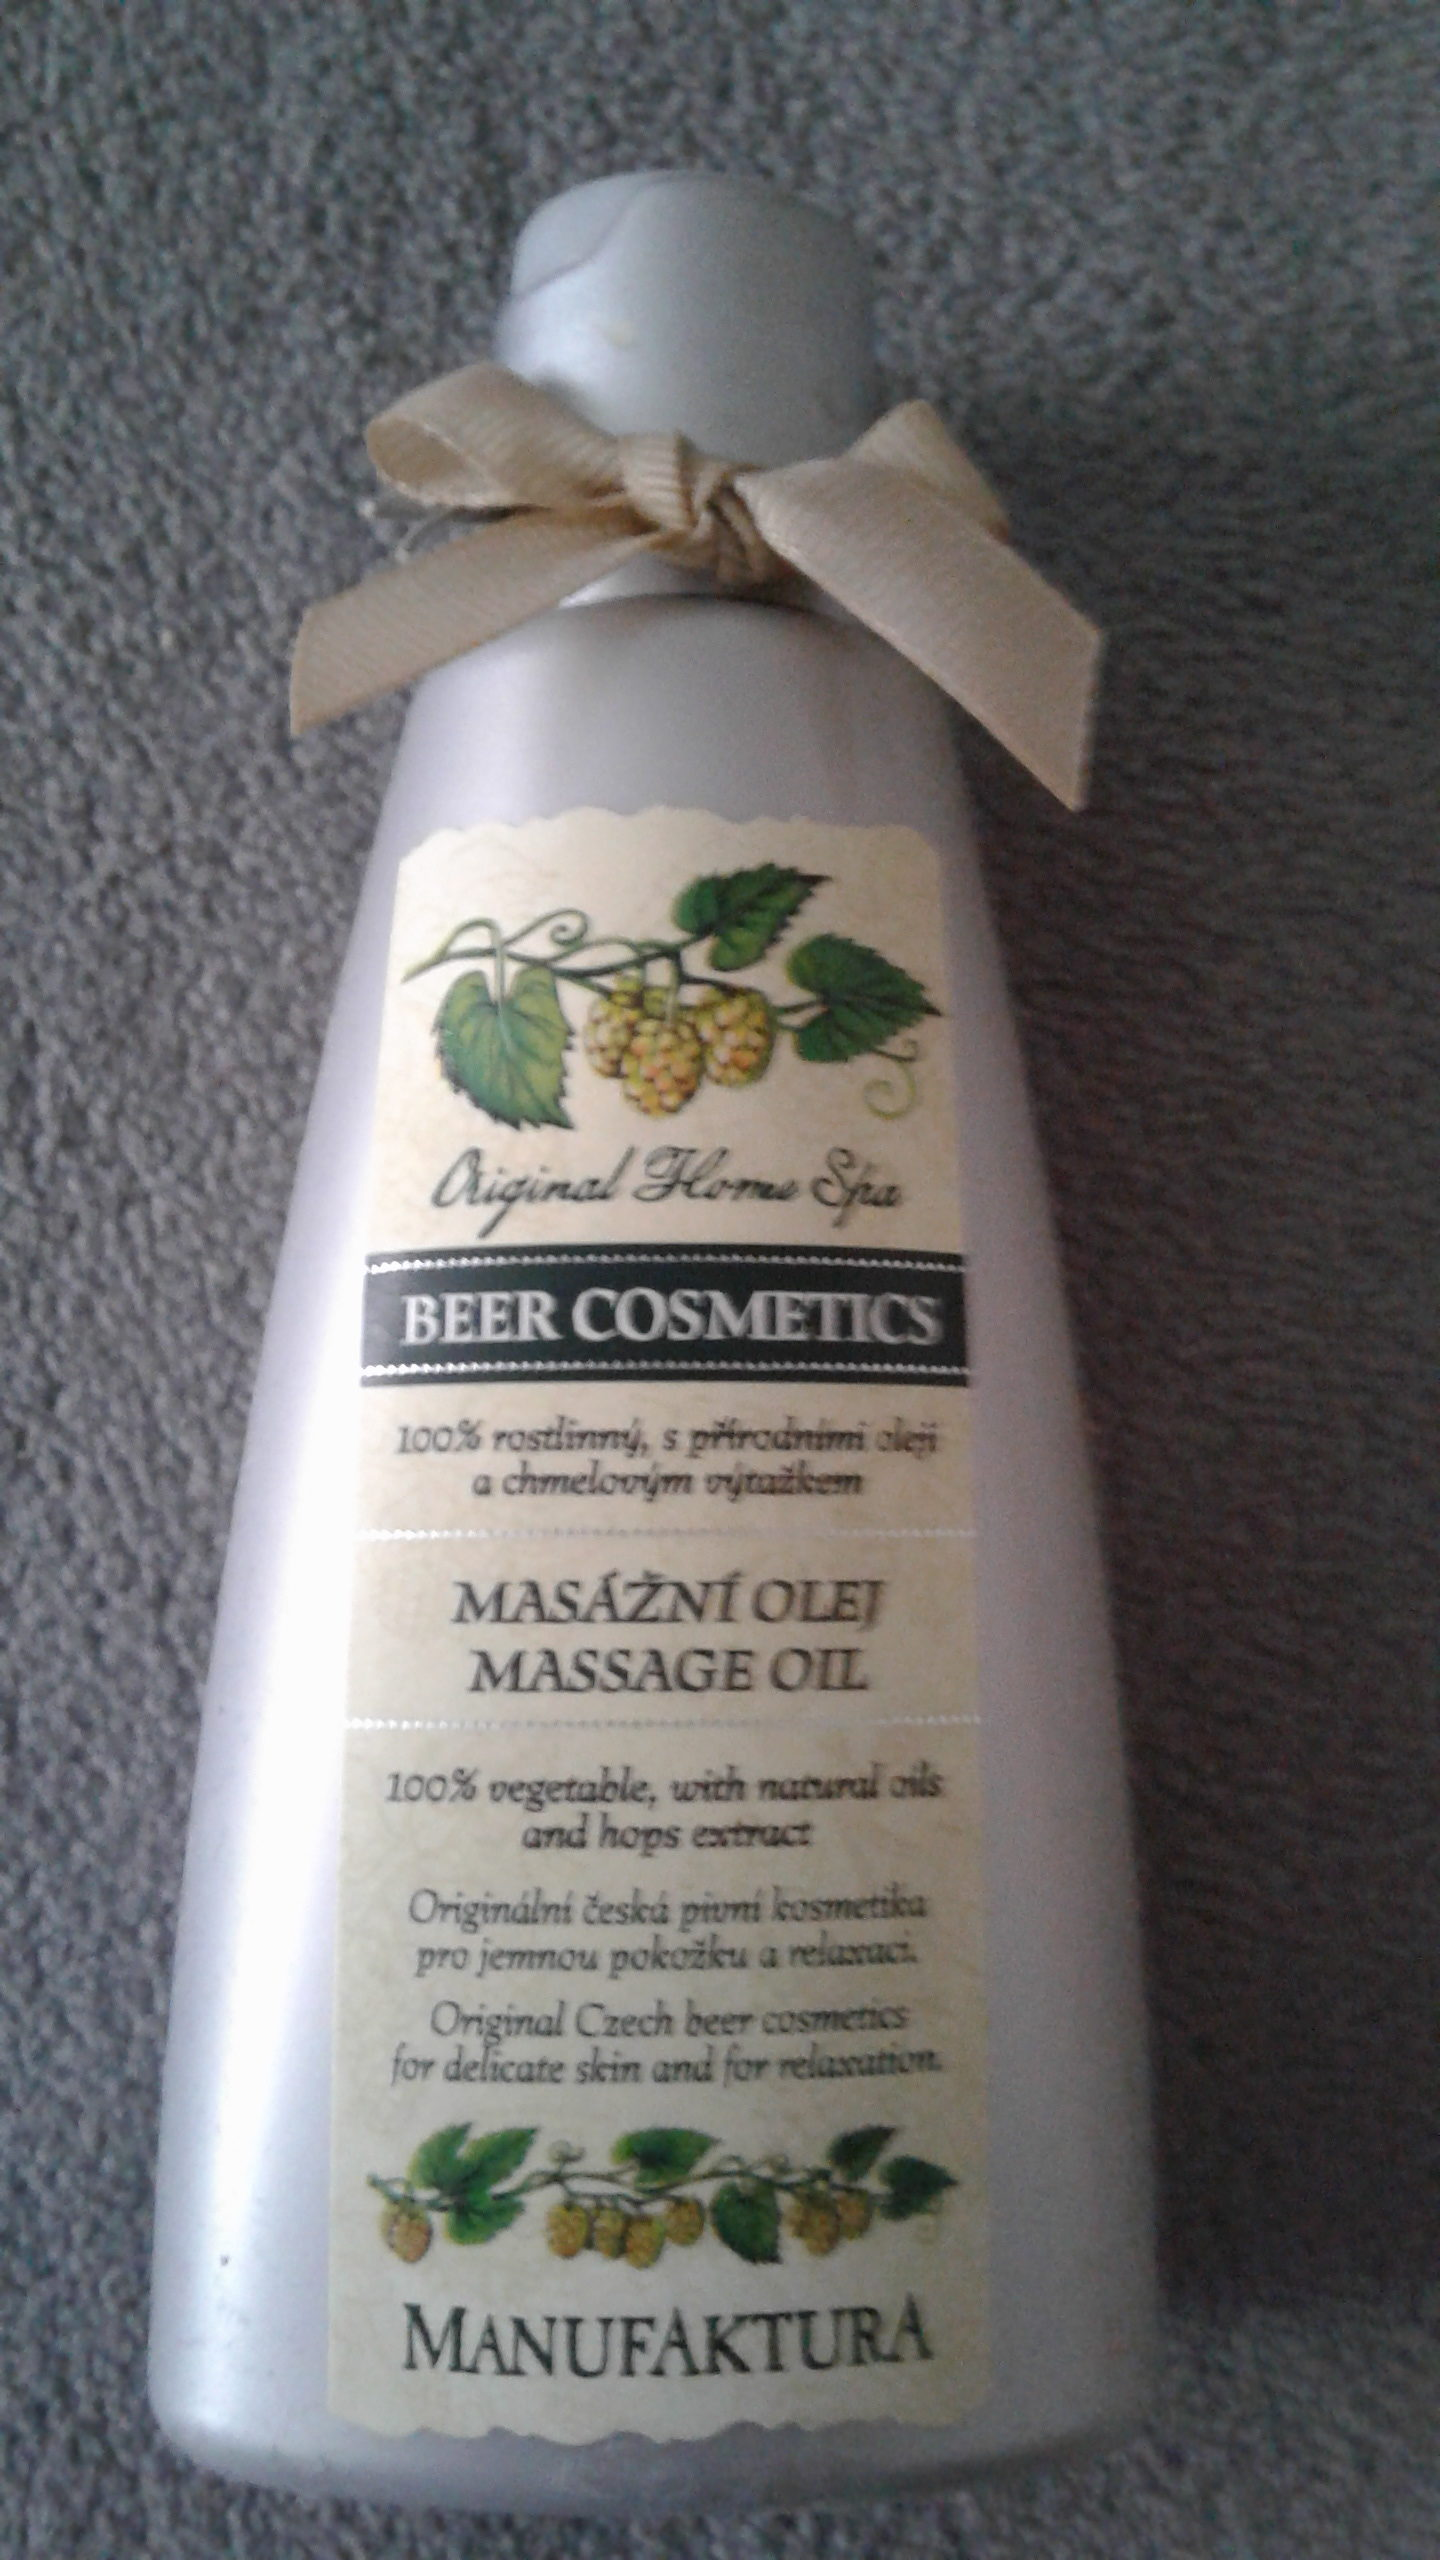 Original Home Spa Beer Cosmetics - Product